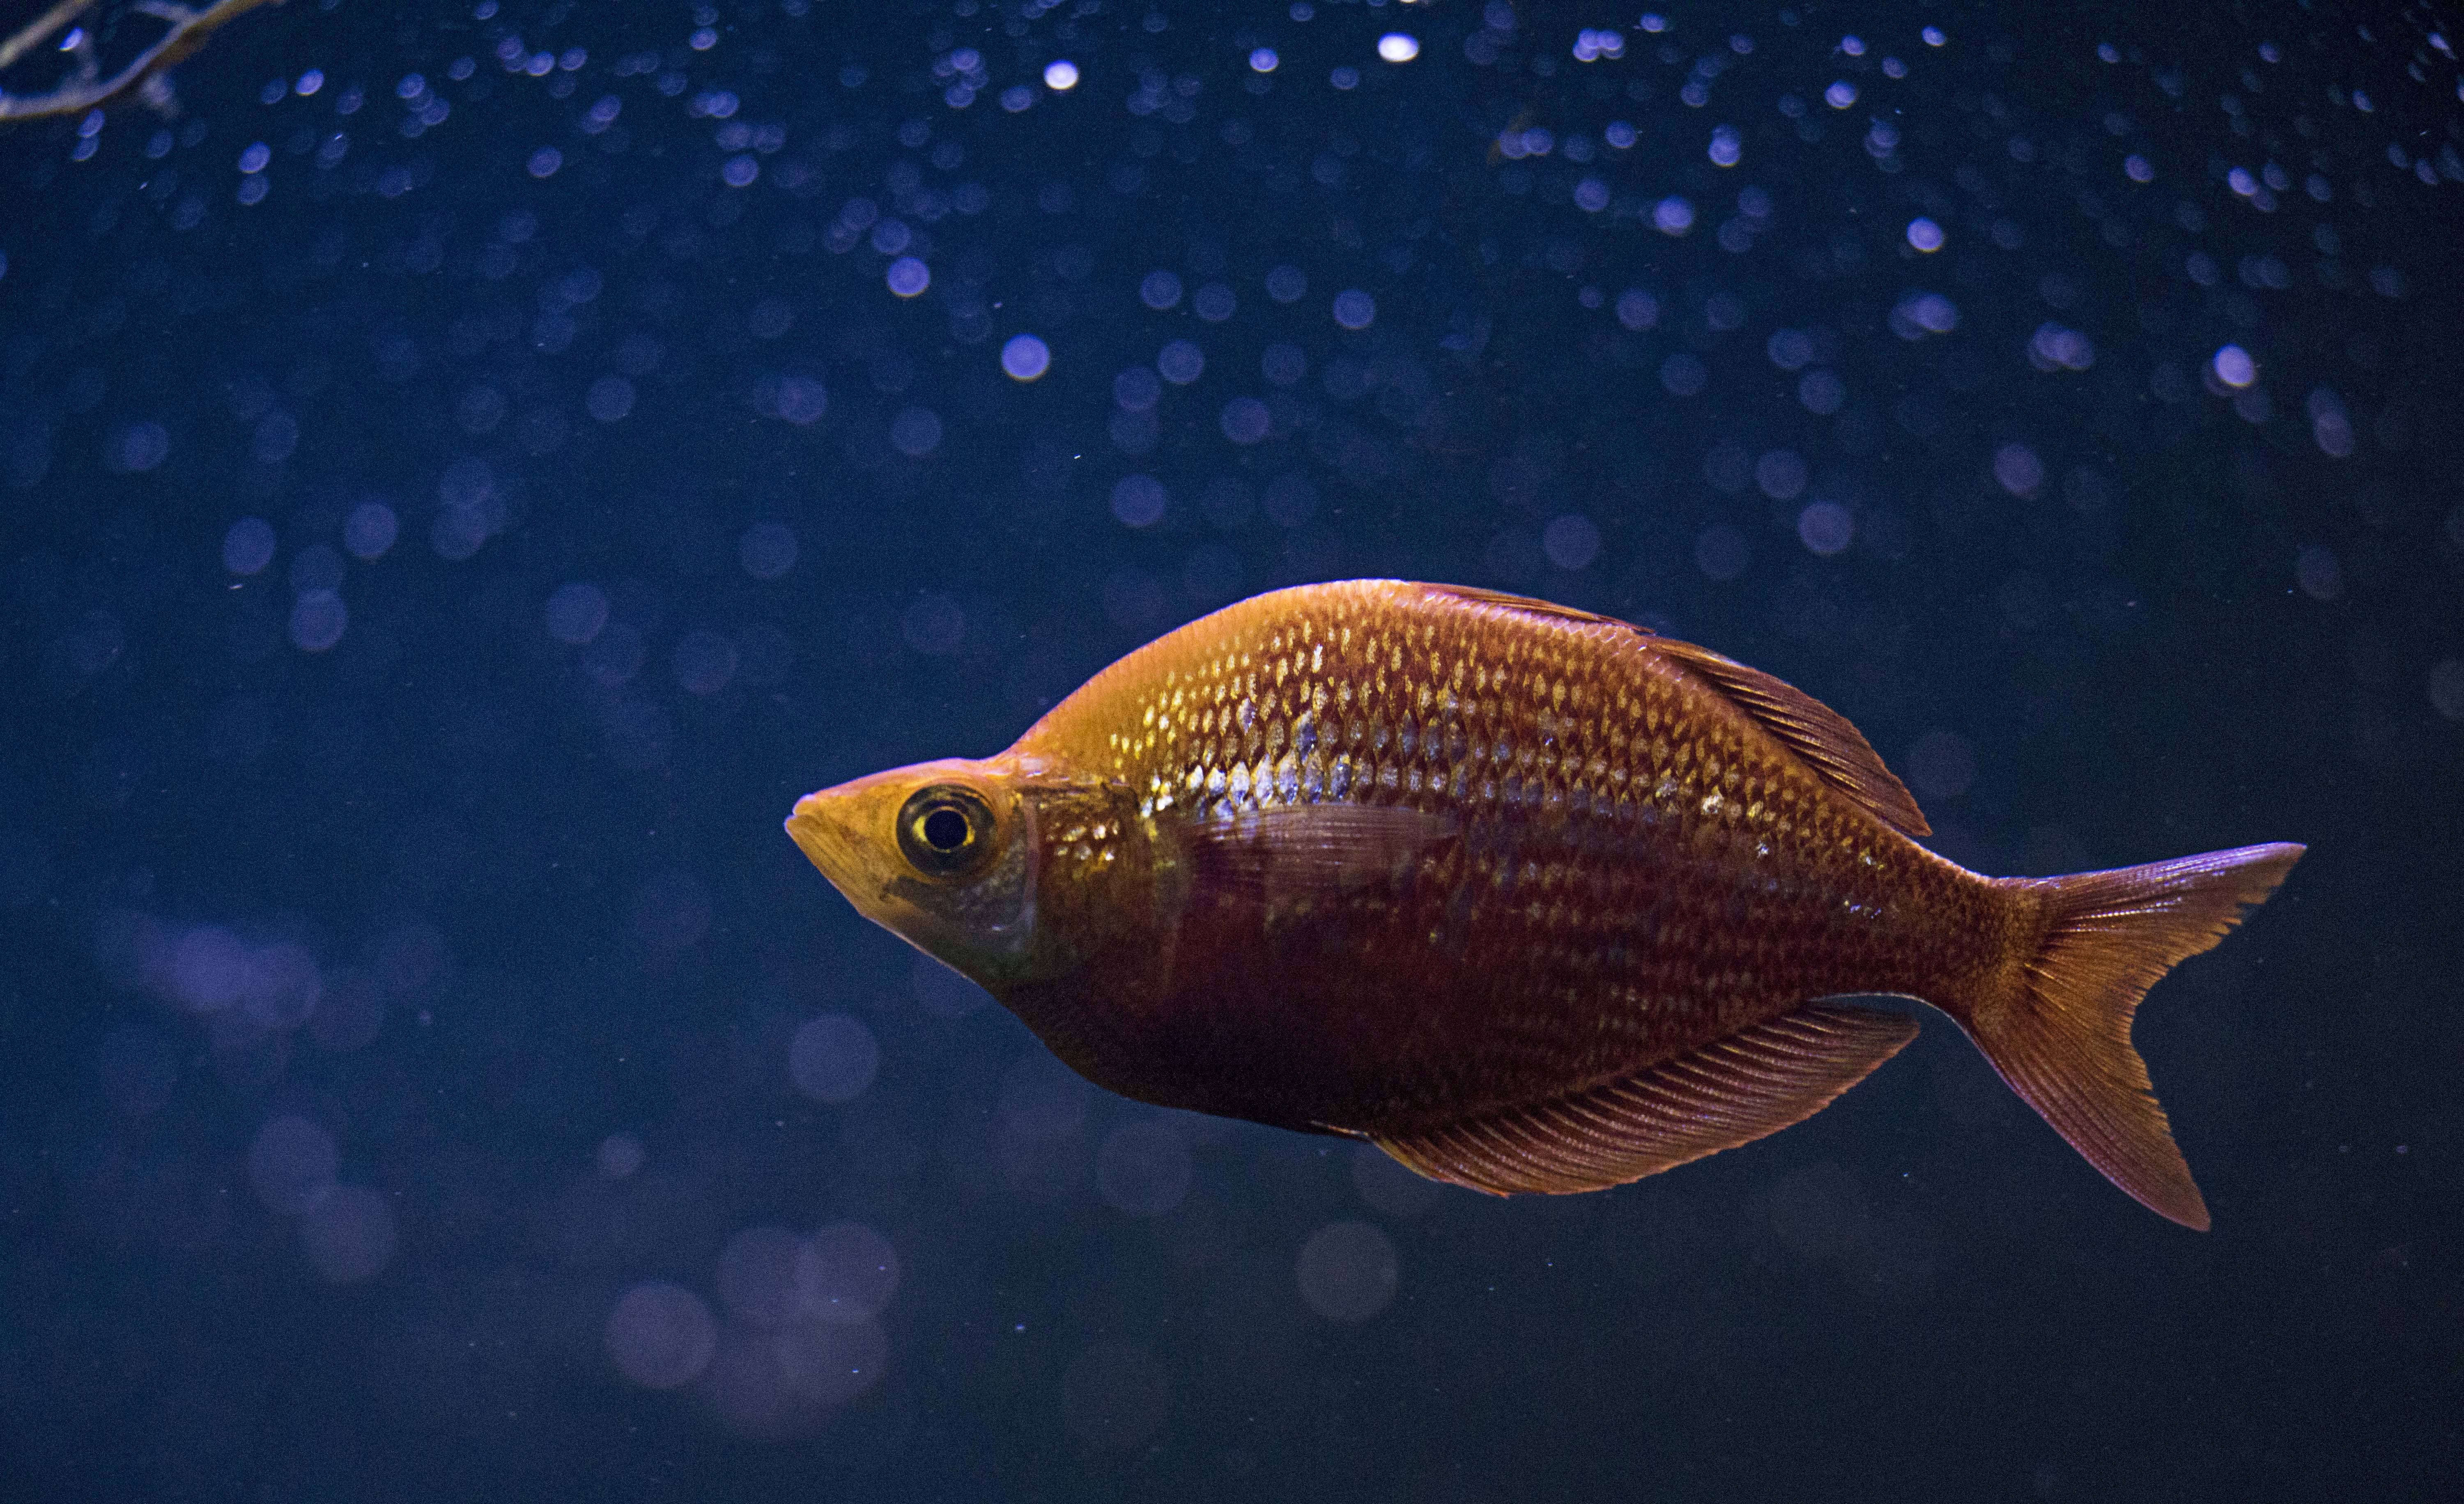 Orange Cichlid Fish in Middle of Blue Water